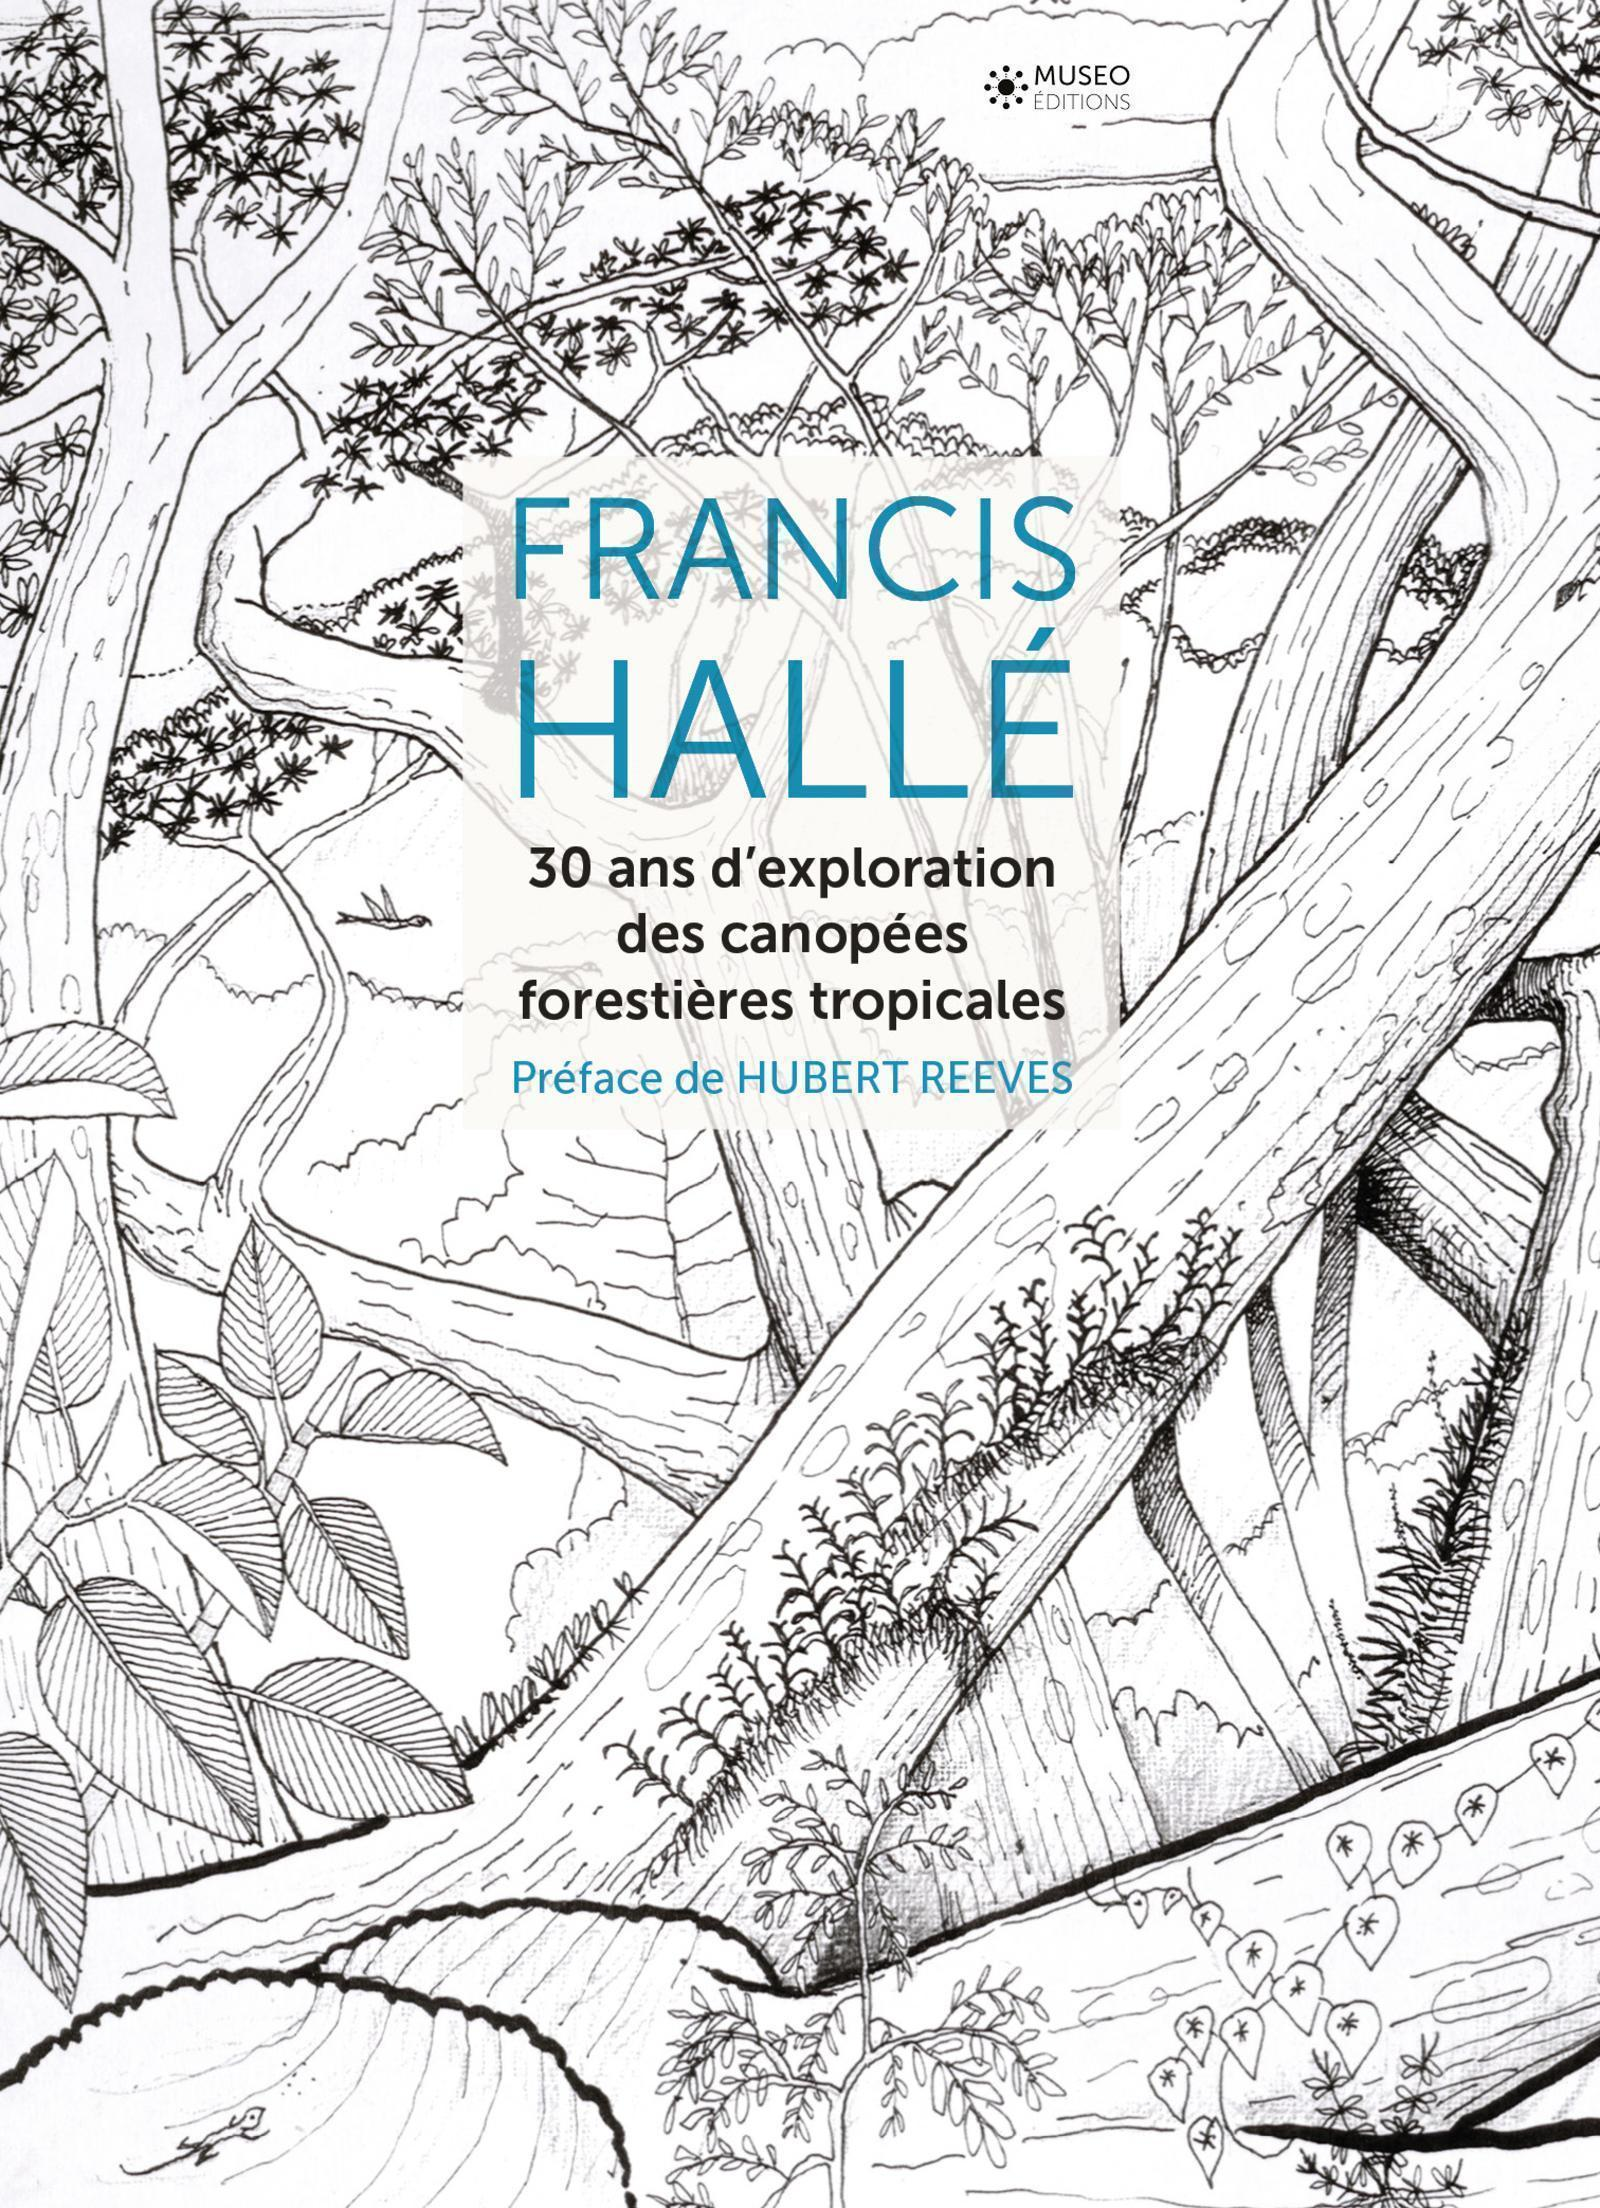 FRANCIS HALLE  30 ANS D EXPLORATION DES CANOPEES FORESTIERES TROPICALES